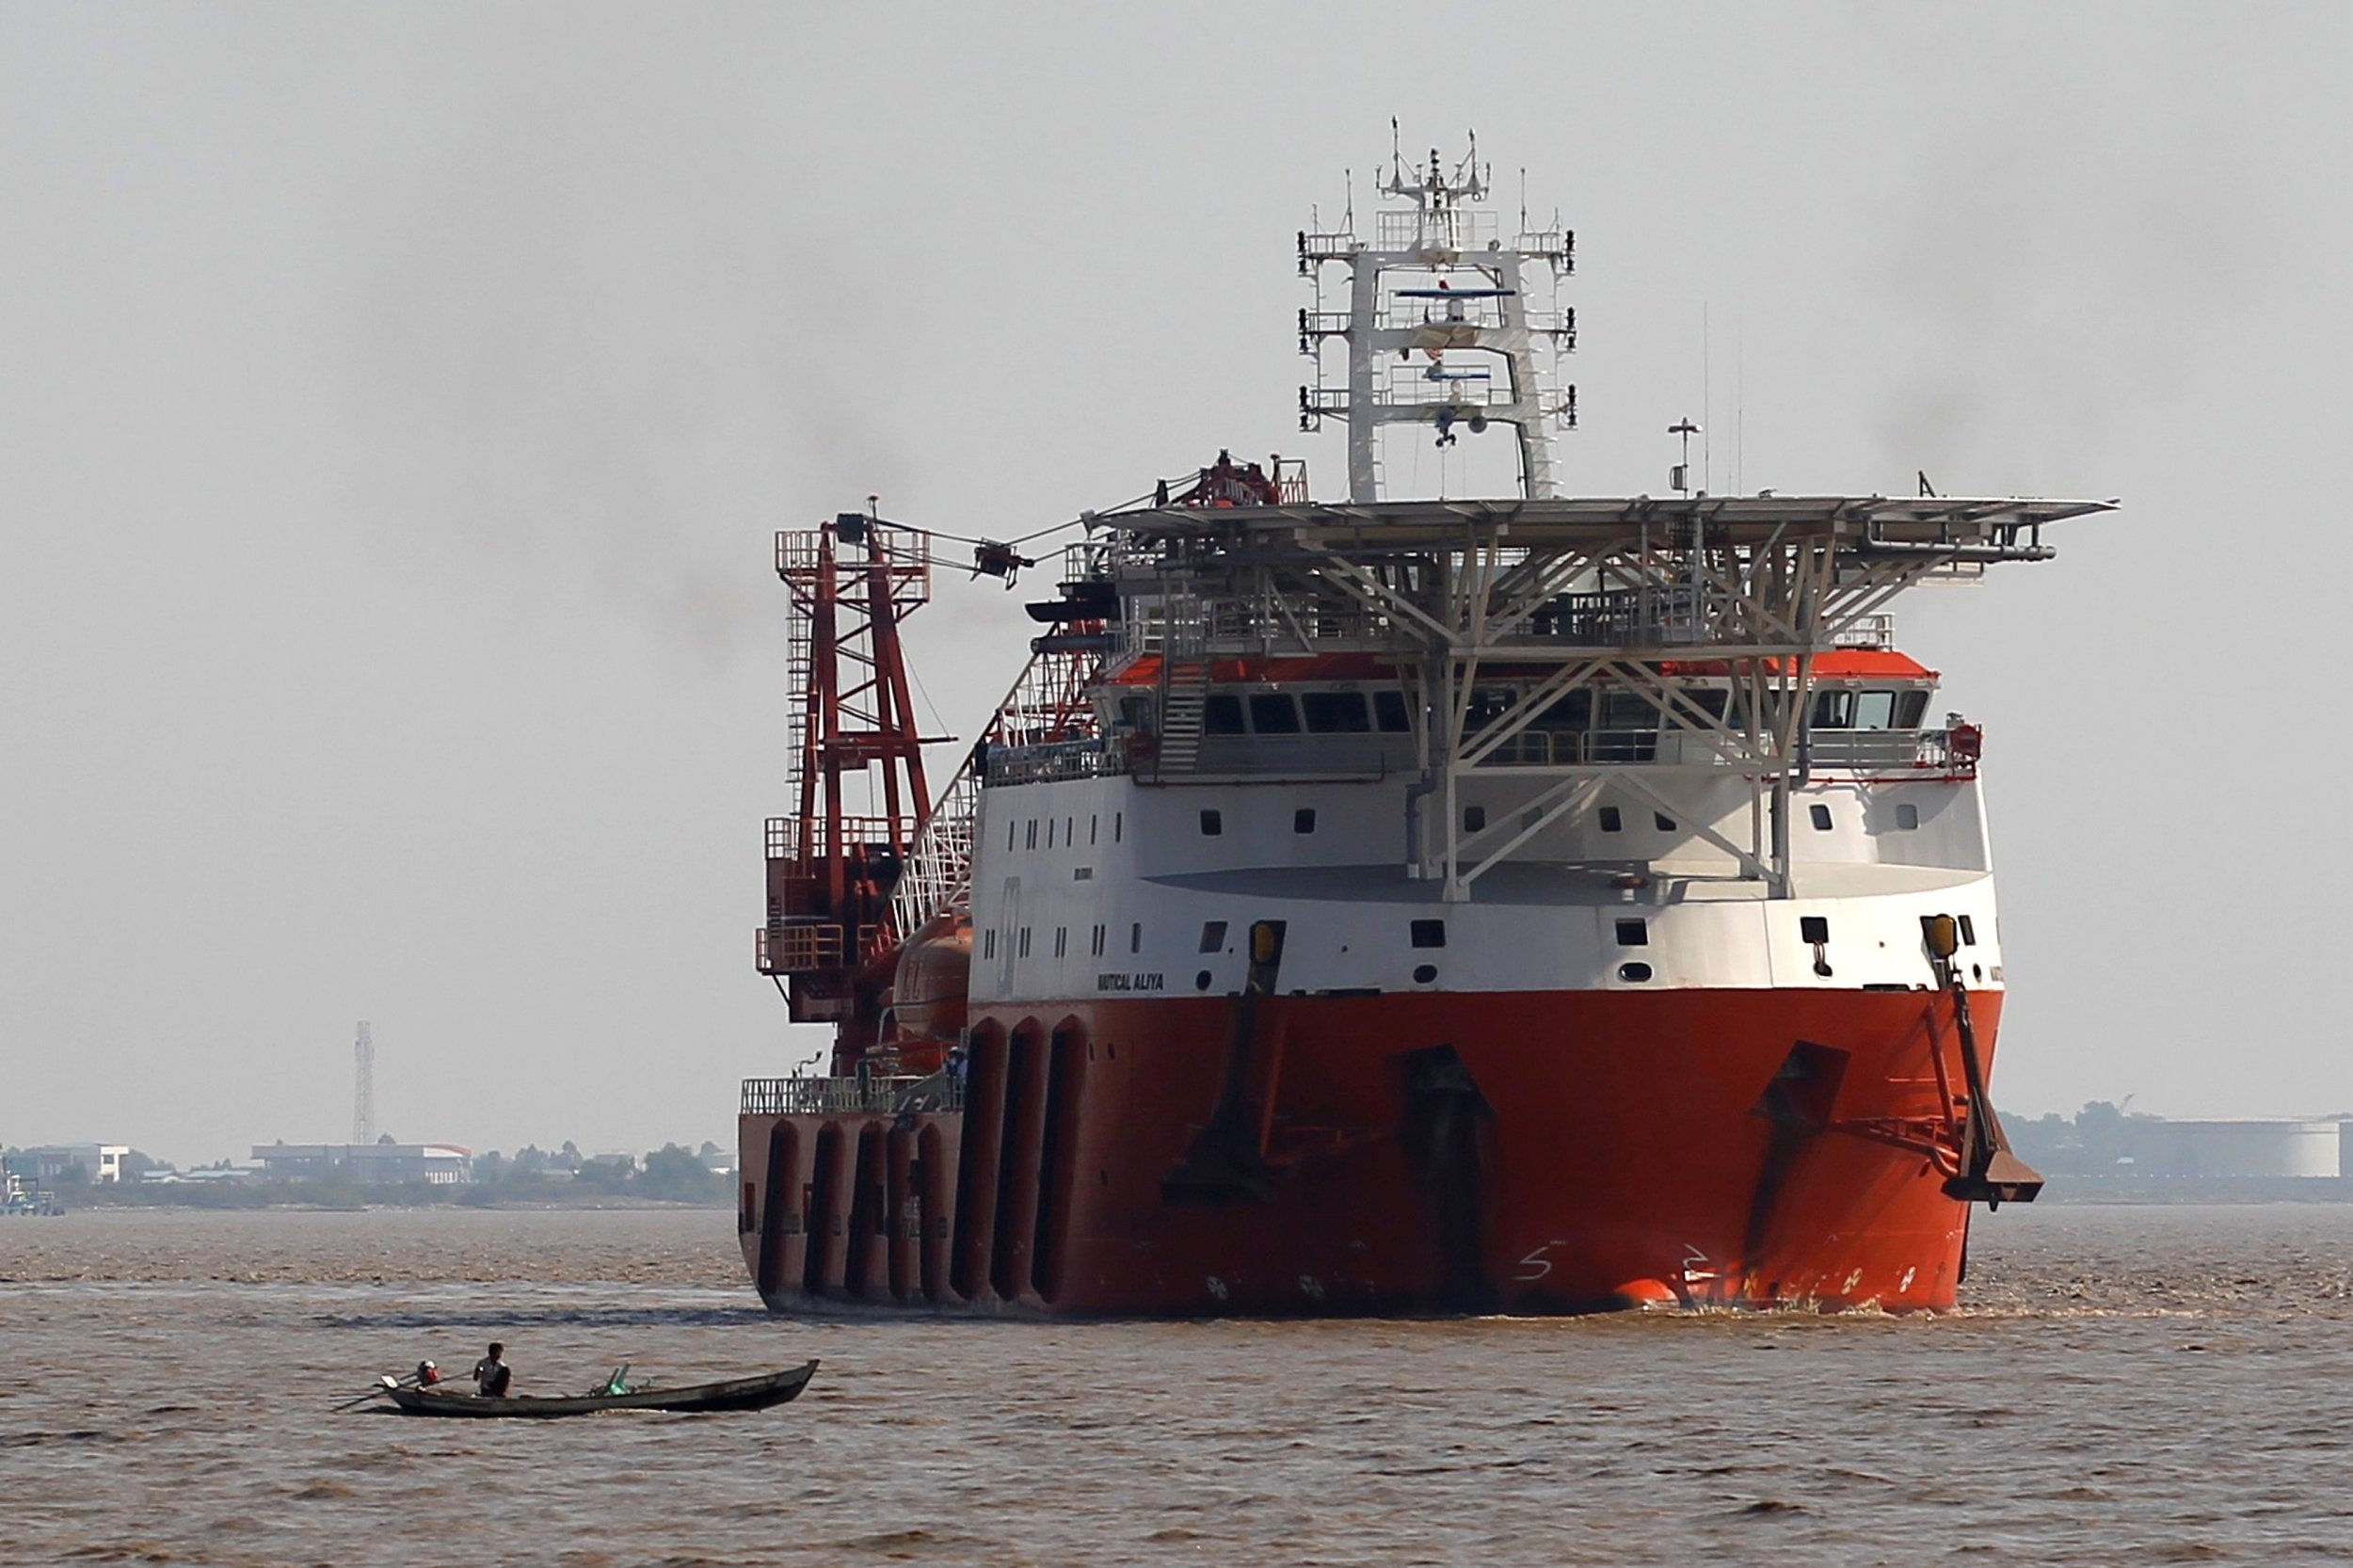 Aid ship from Malaysia